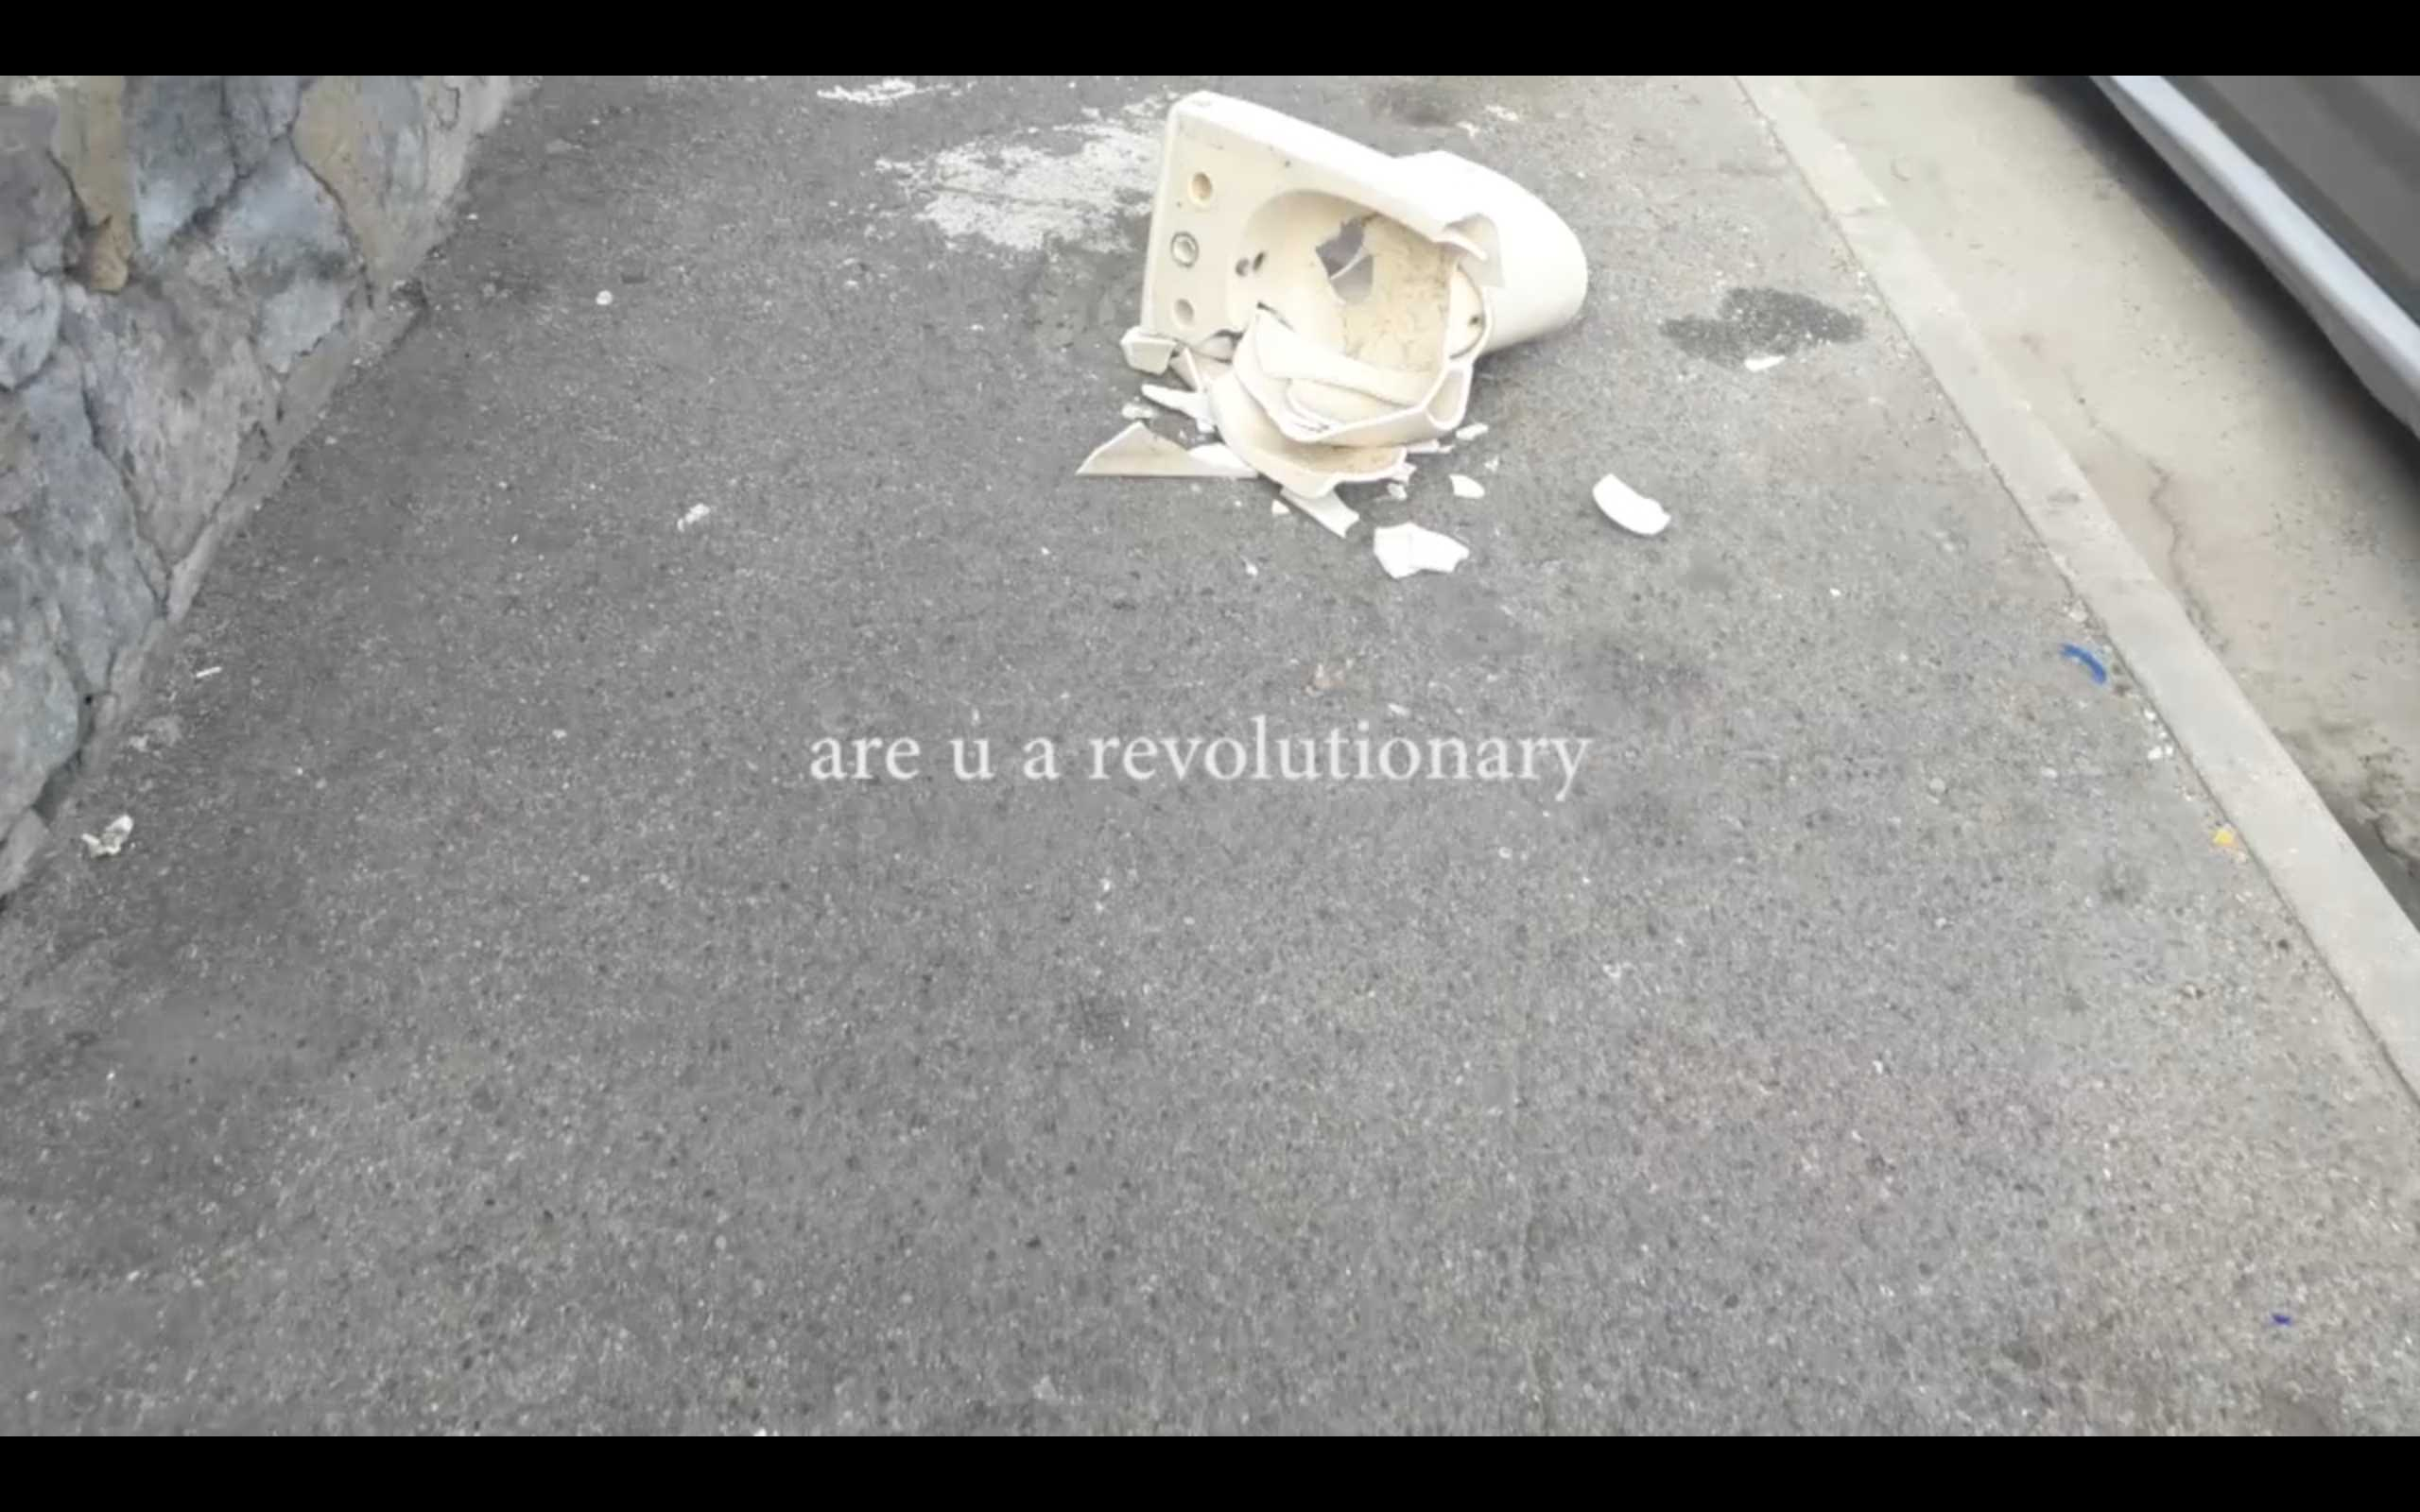 'Are You Revolution' video still from January Chronicle by Clara Saito, Cagliari 2019